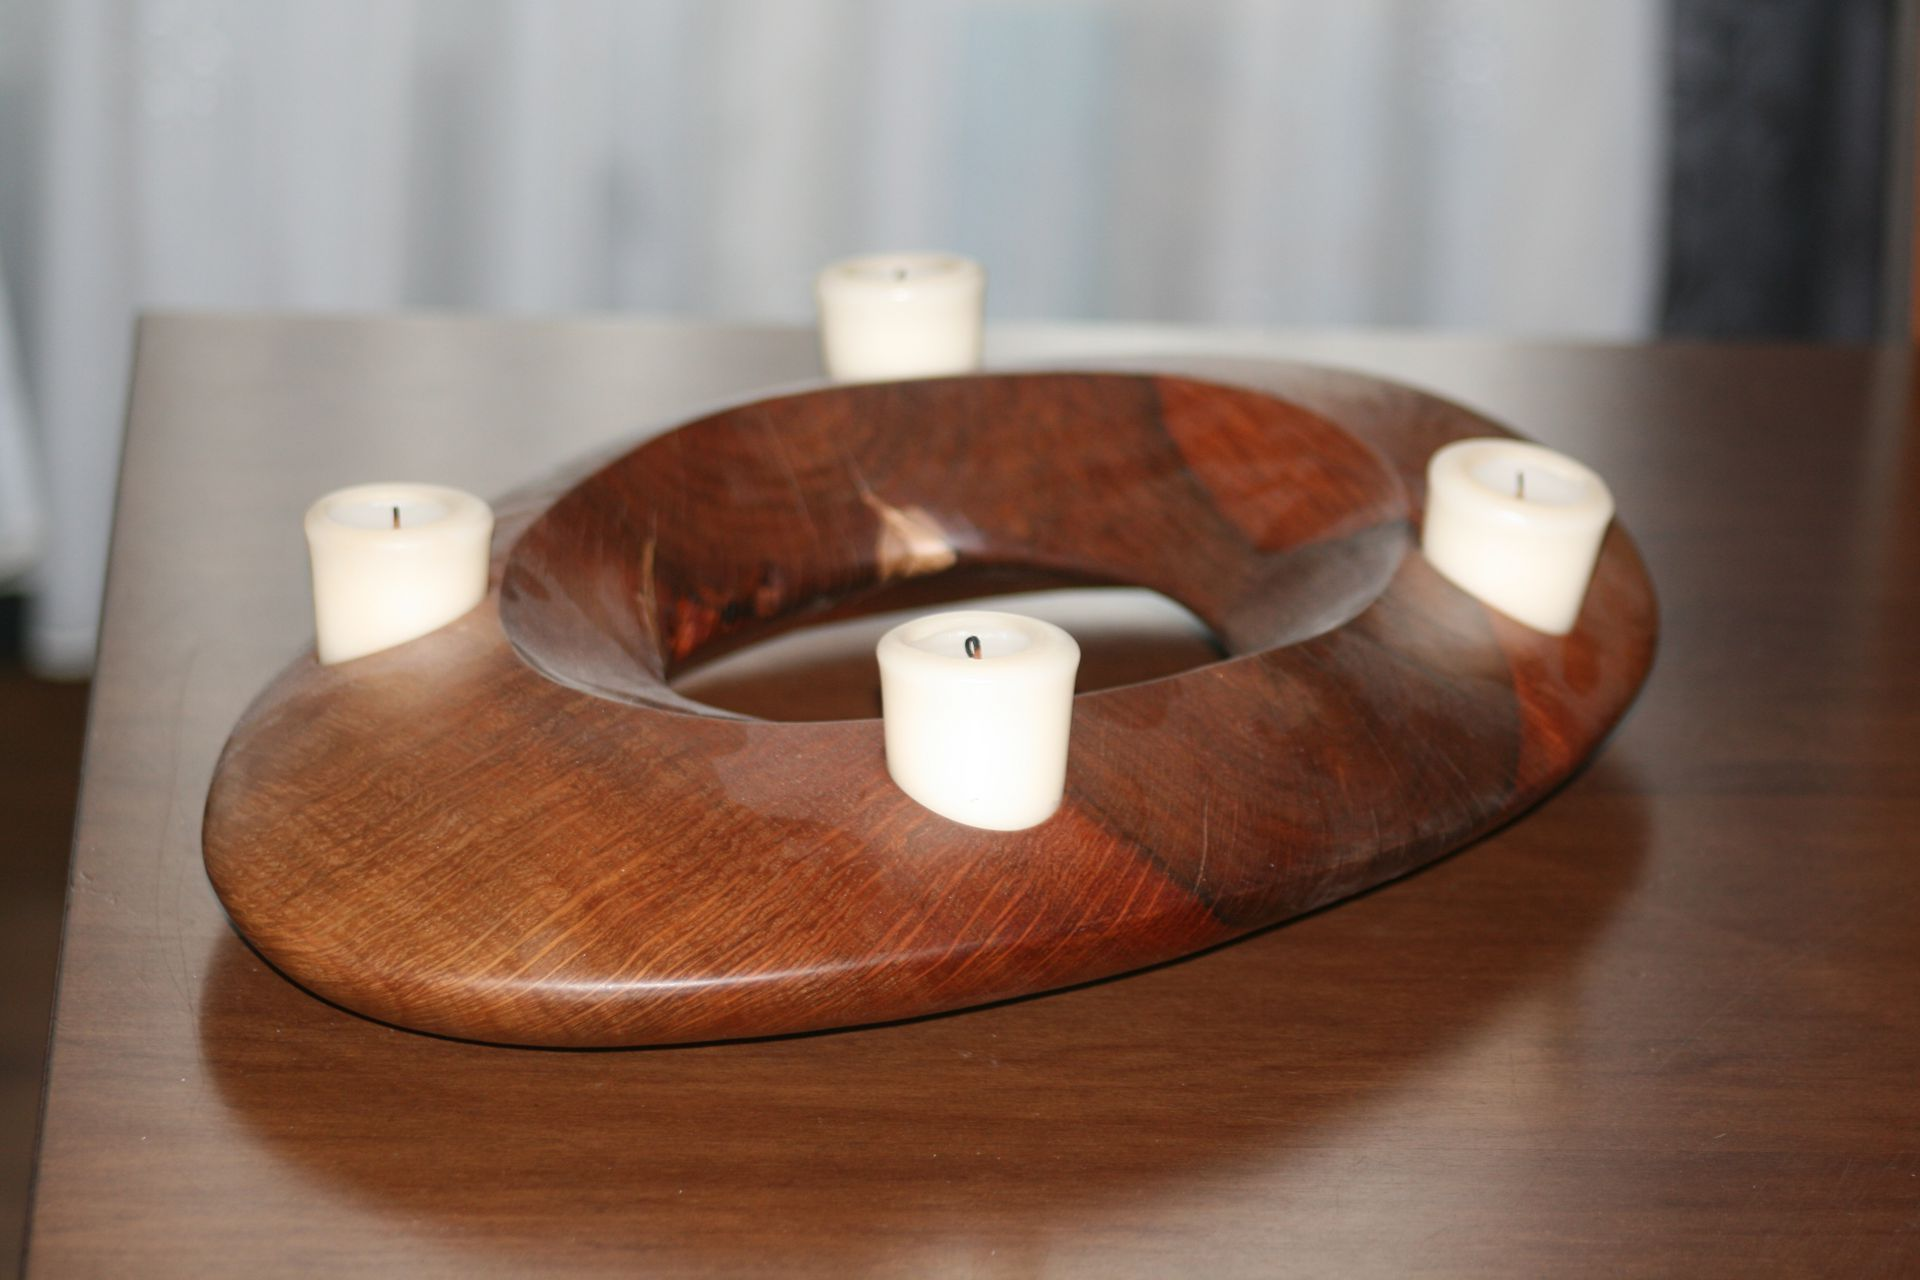 sacral wooden design handmade sanisio unique candle holder Advent black holm oak oval